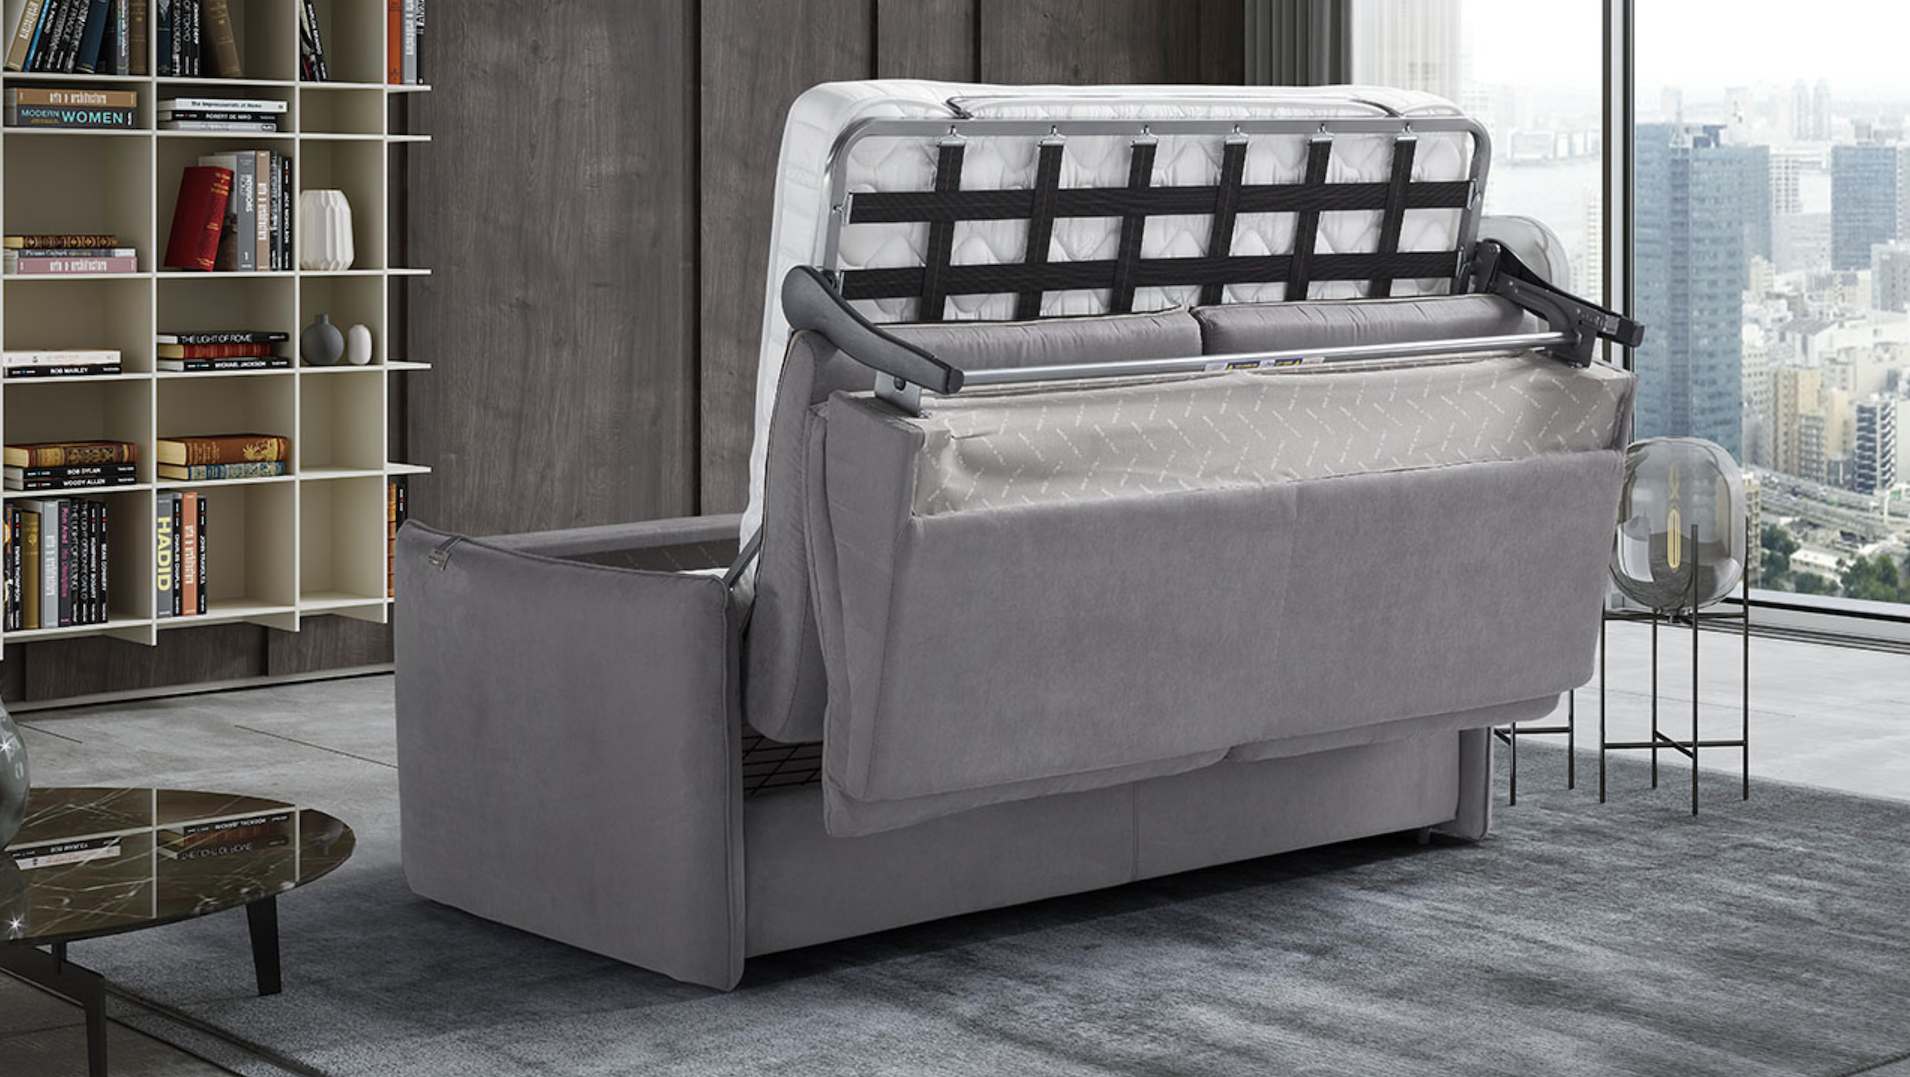 AIMEE Italian Crafted 3 Seat Sofa Bed in PLAZA SILVER RRP £1979 - Image 4 of 9